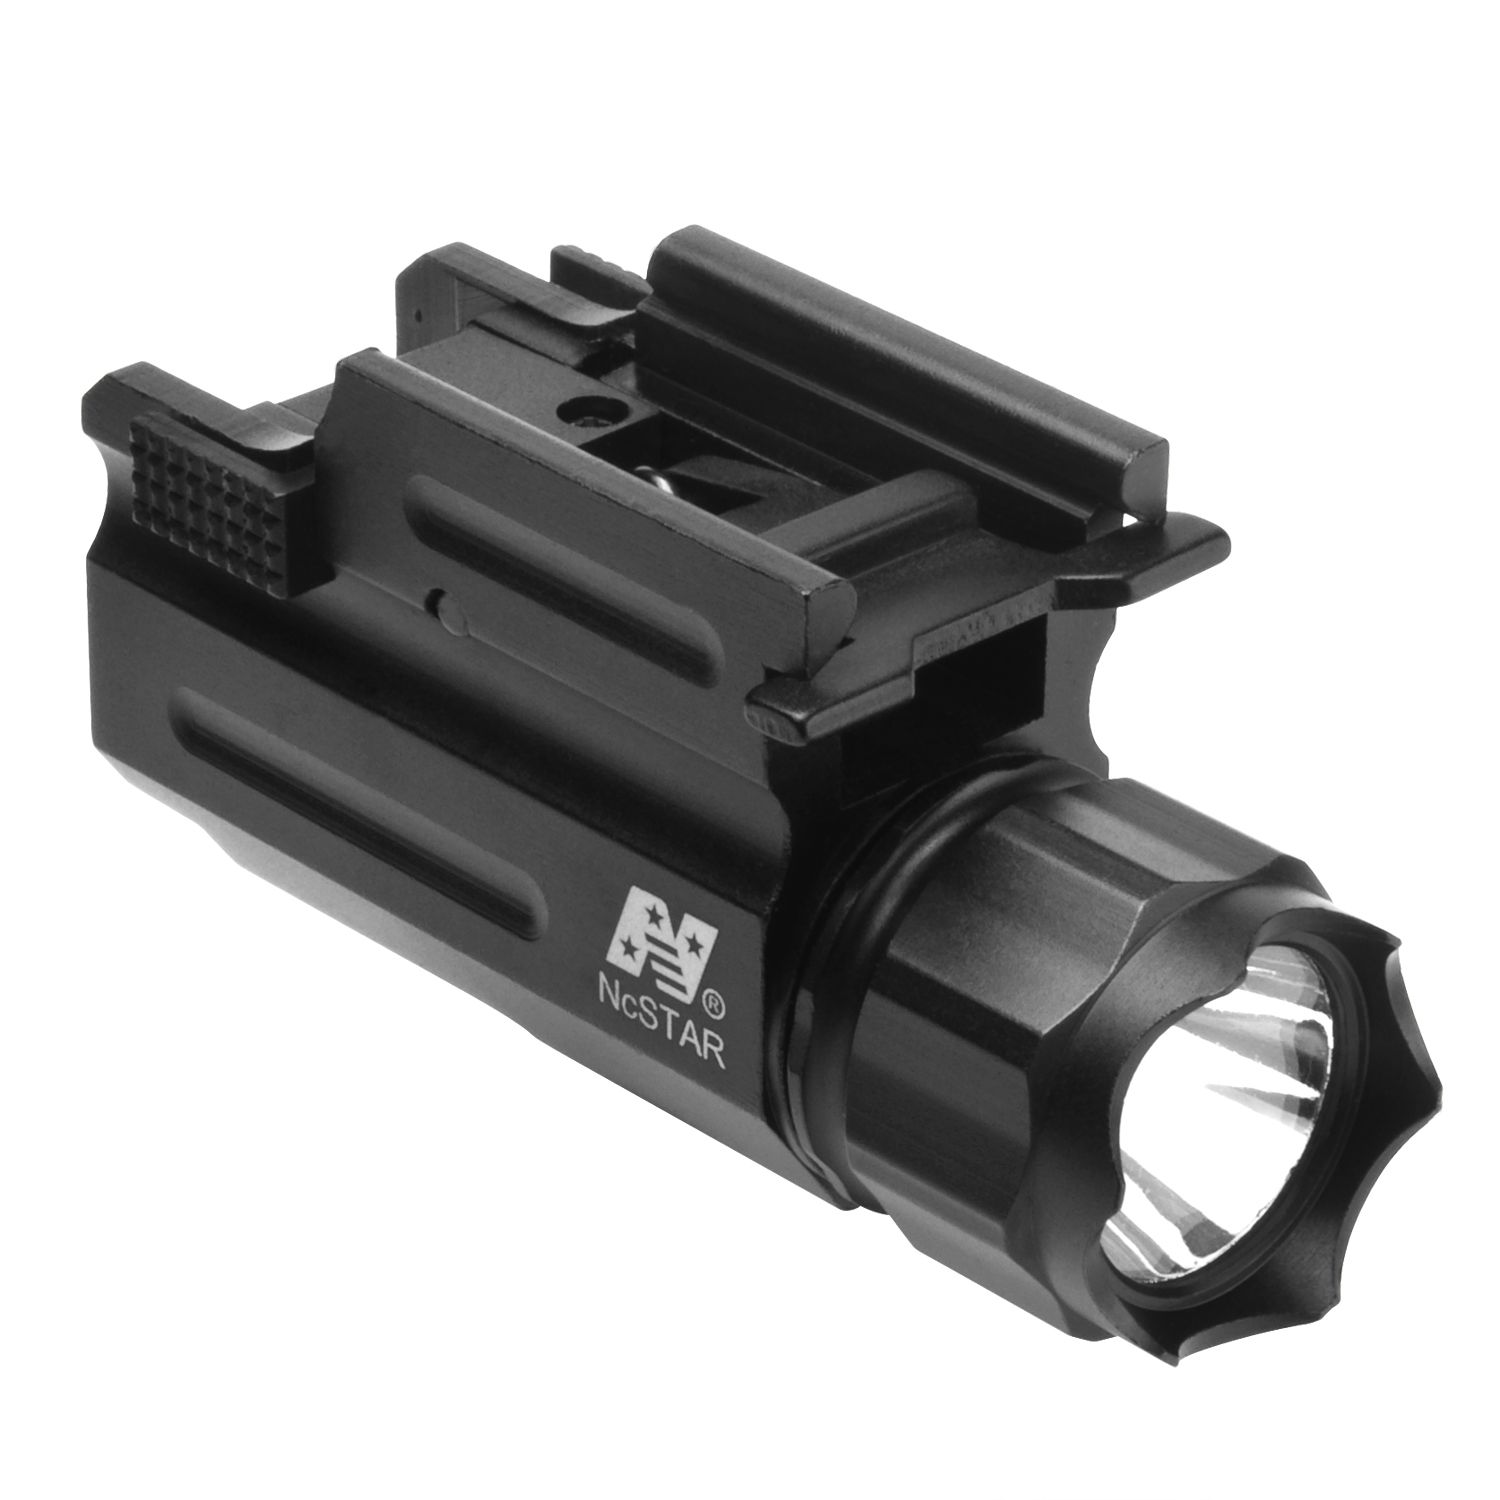 Ncstar Tactical Pistol Rifle Flashlight With Quick Release